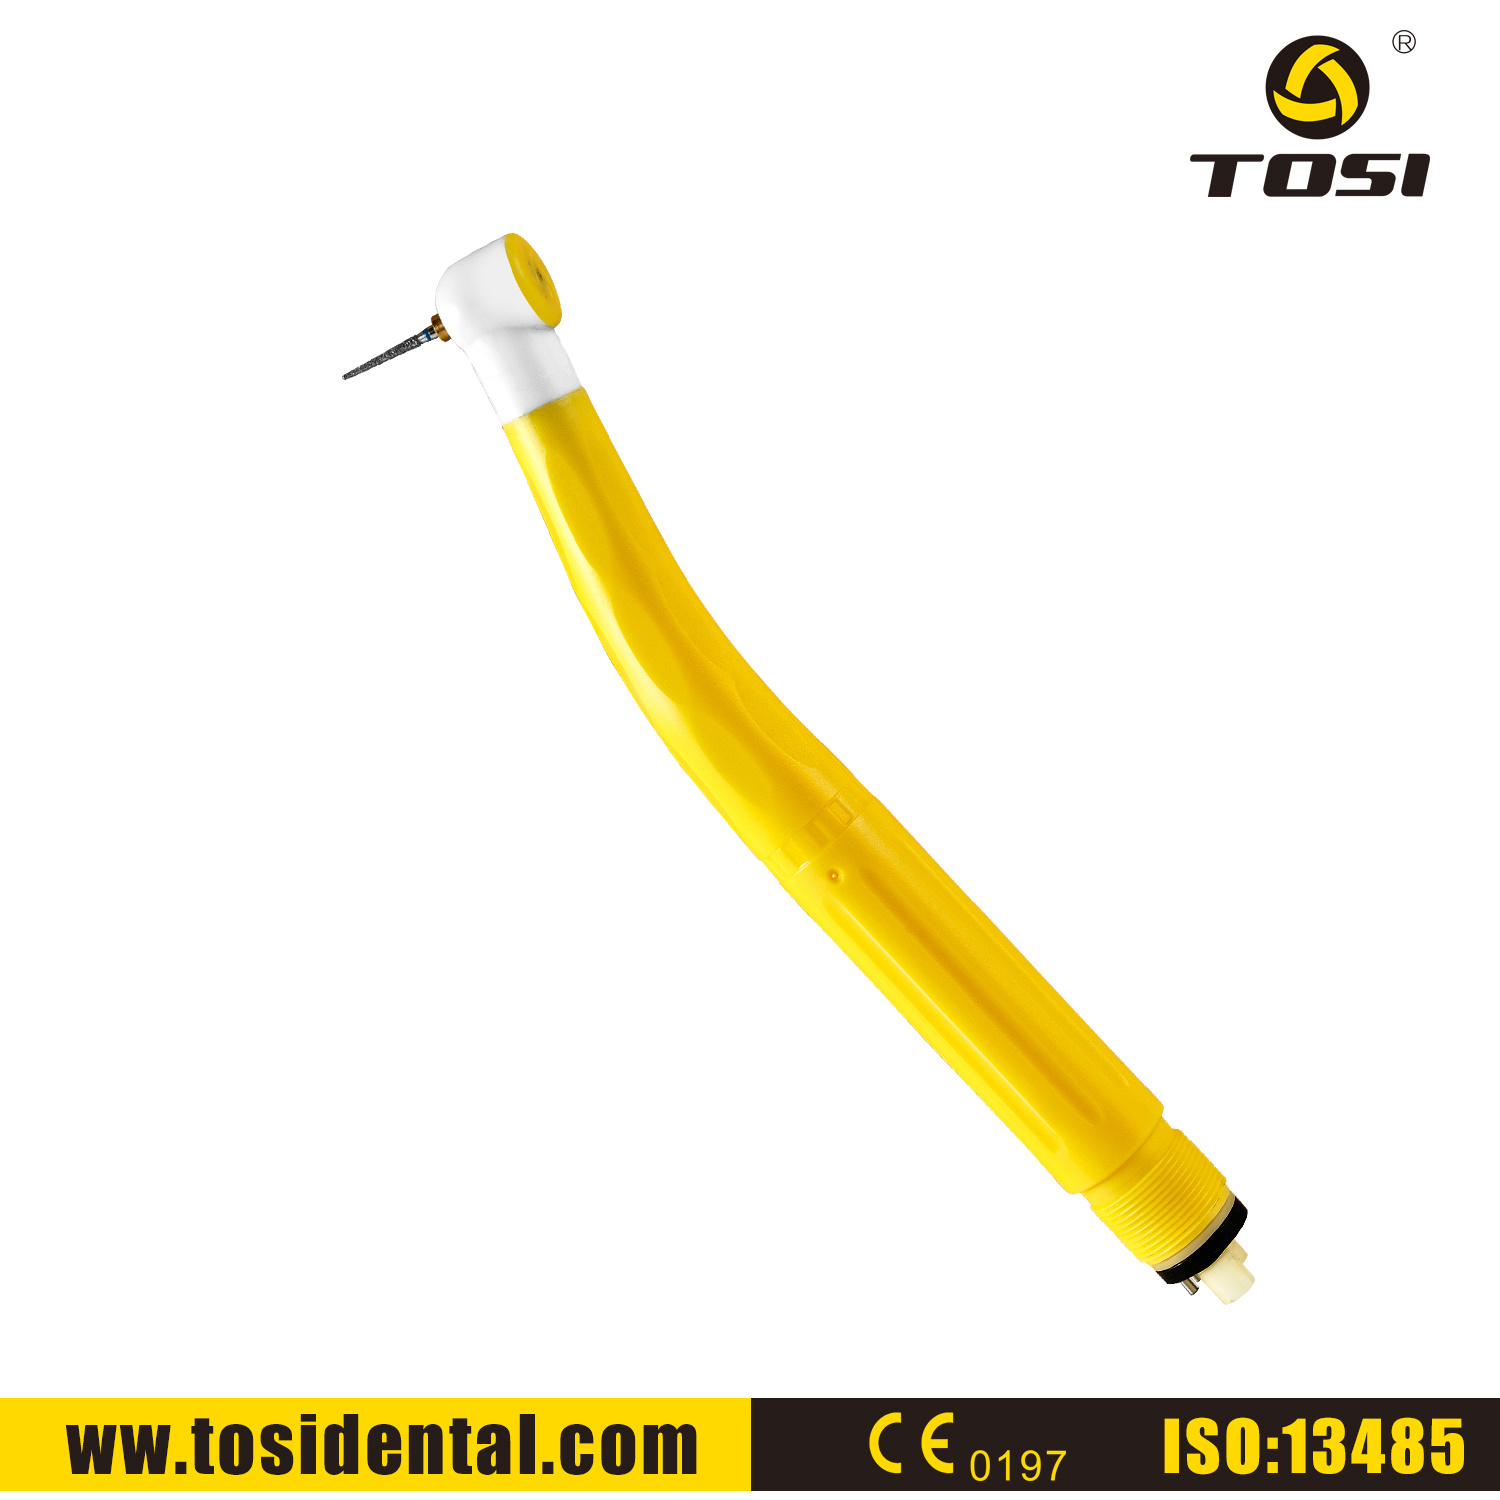 Tosi Yellow High Speed Disposable Dental Handpiece for Individual Patience